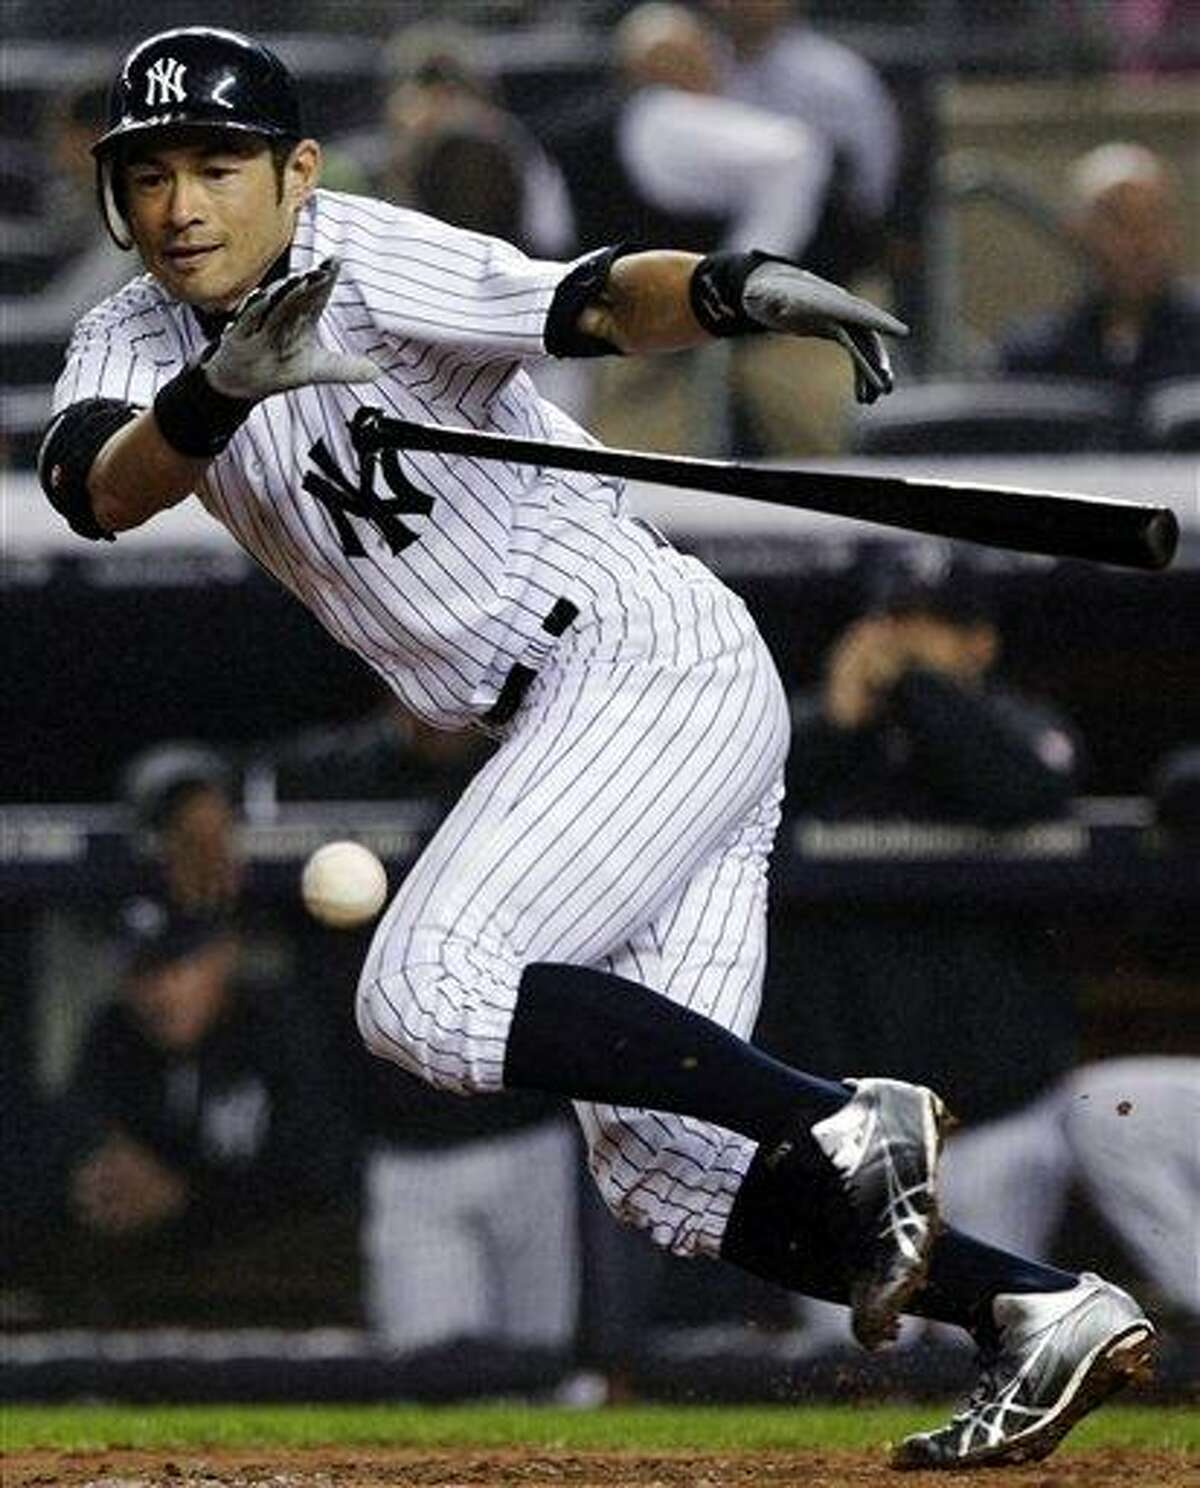 New York Yankees' Ichiro Suzuki, of Japan, bunts during the fifth inning of a baseball game against the Boston Red Sox, Tuesday, Oct. 2, 2012, in New York. Suzuki was safe at first on the play. (AP Photo/Frank Franklin II)